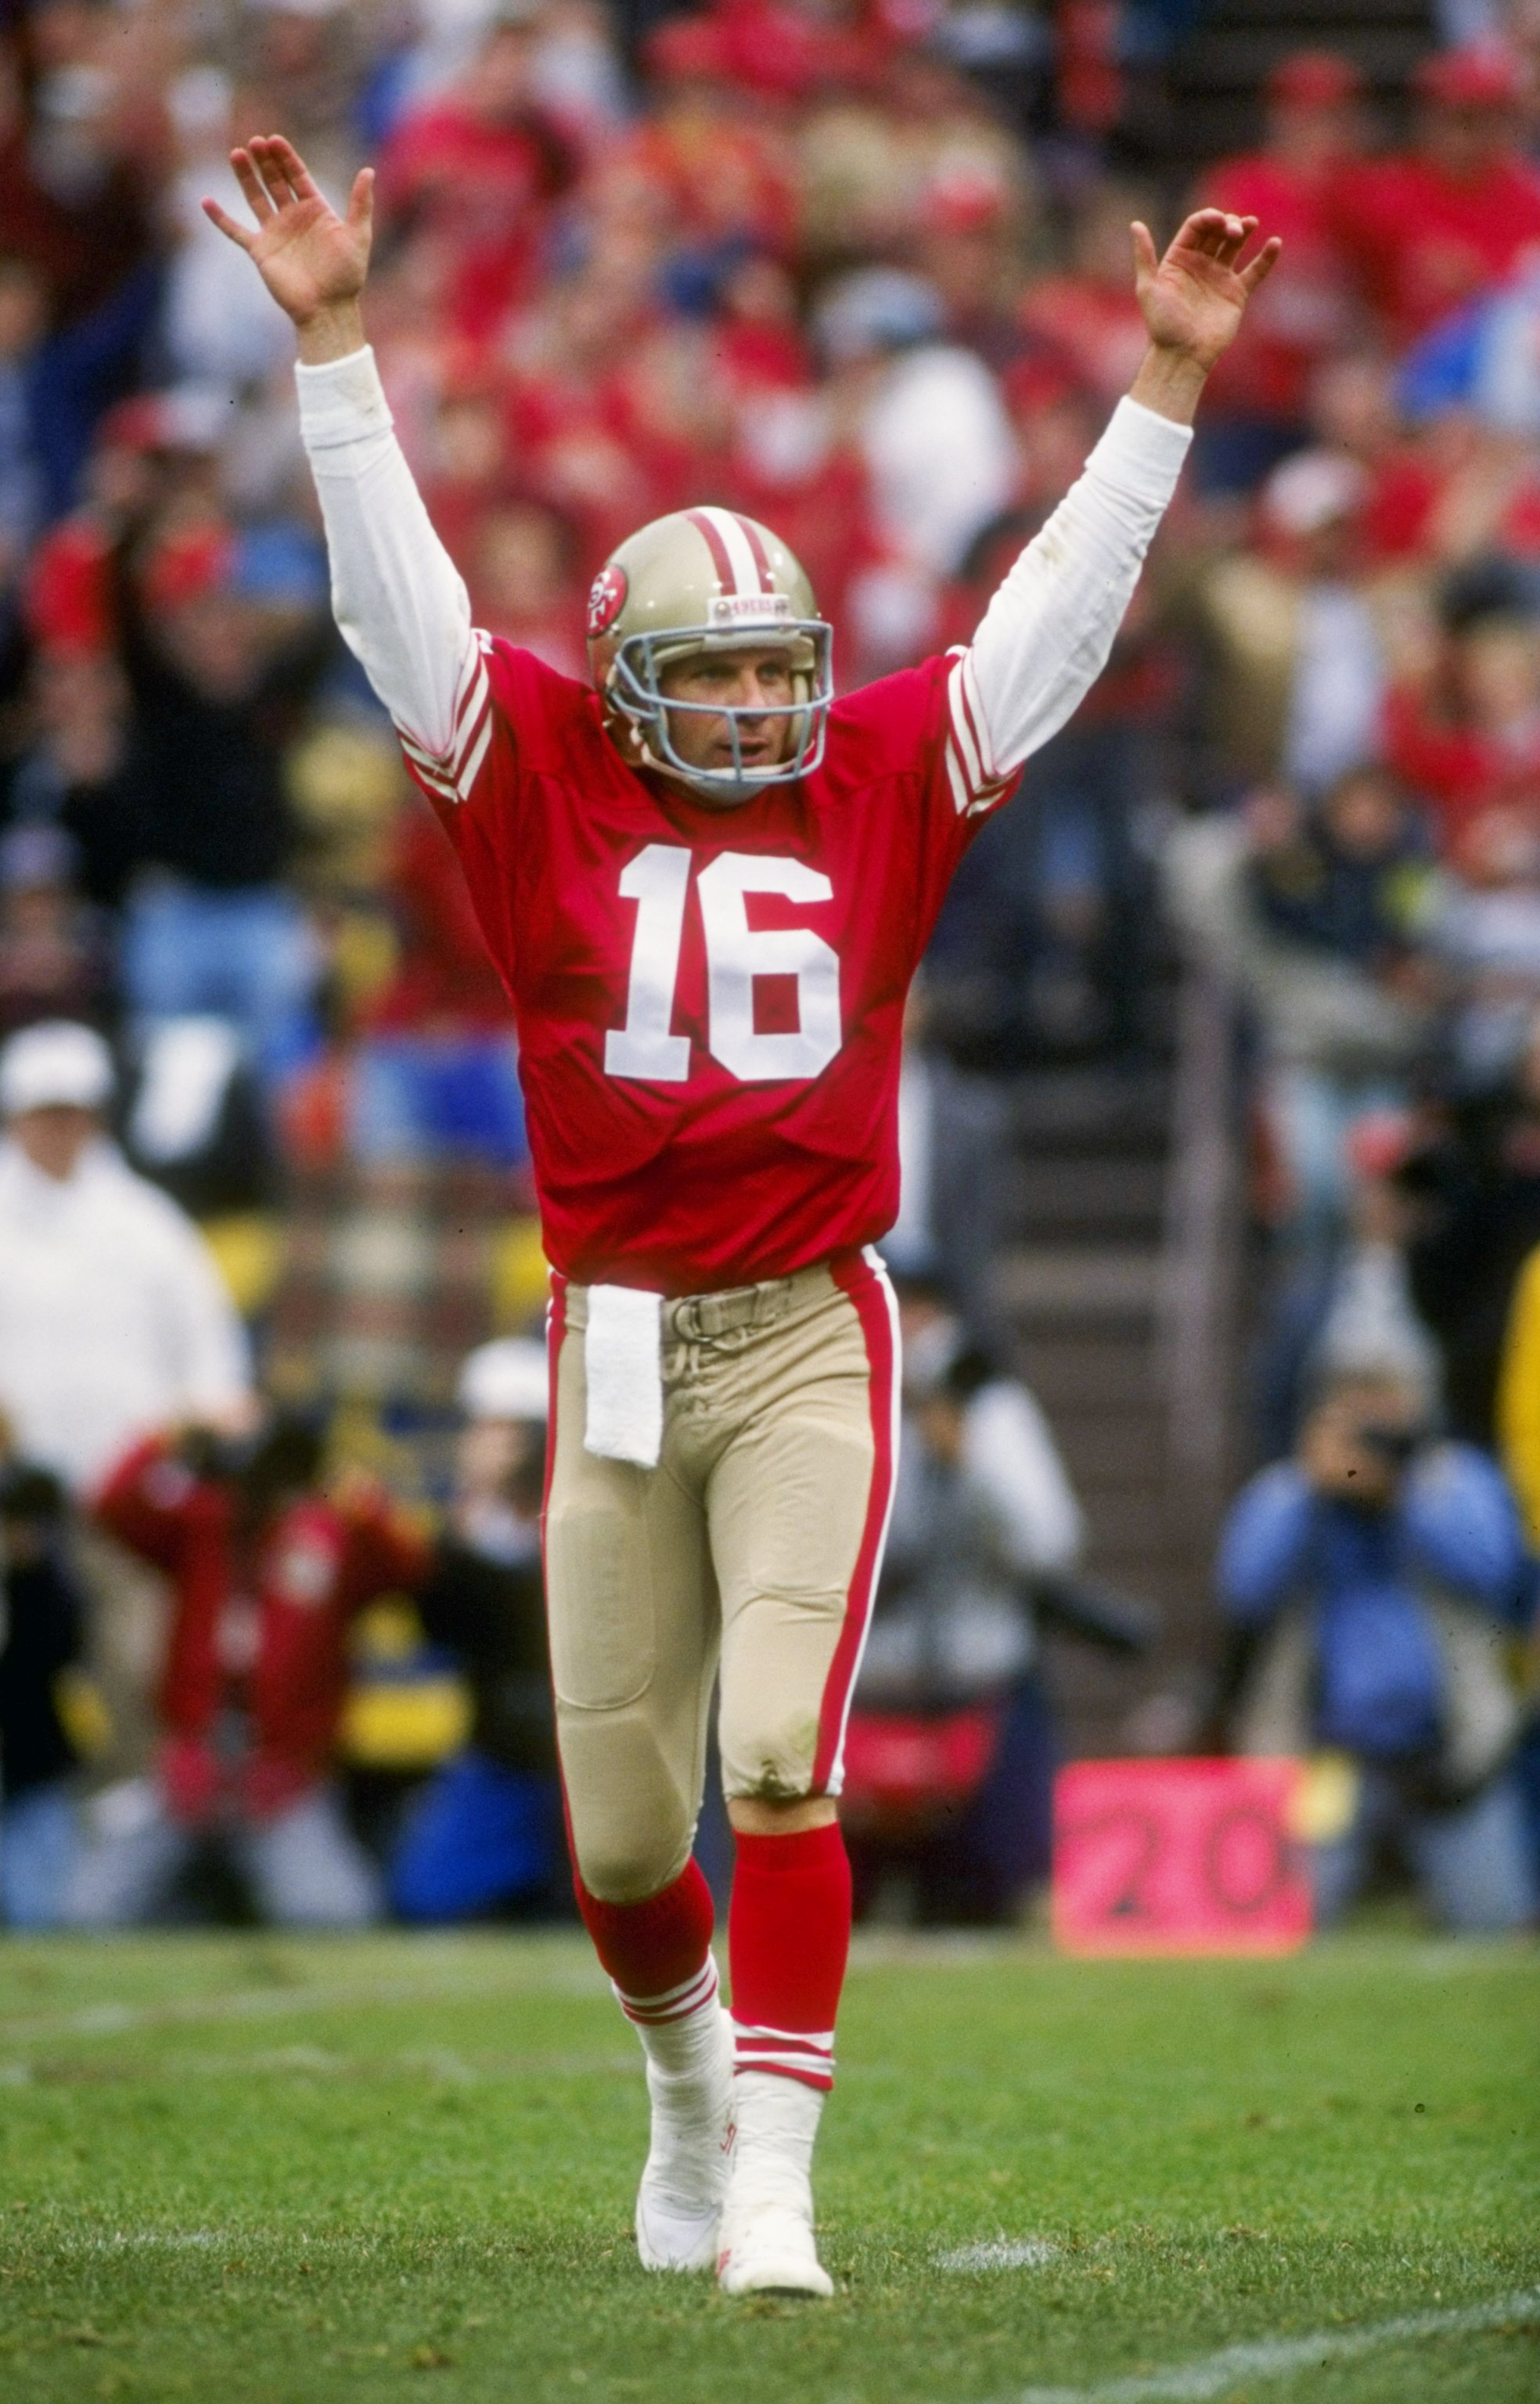 Joe Montana Leads The 49ers To Another Touchdown